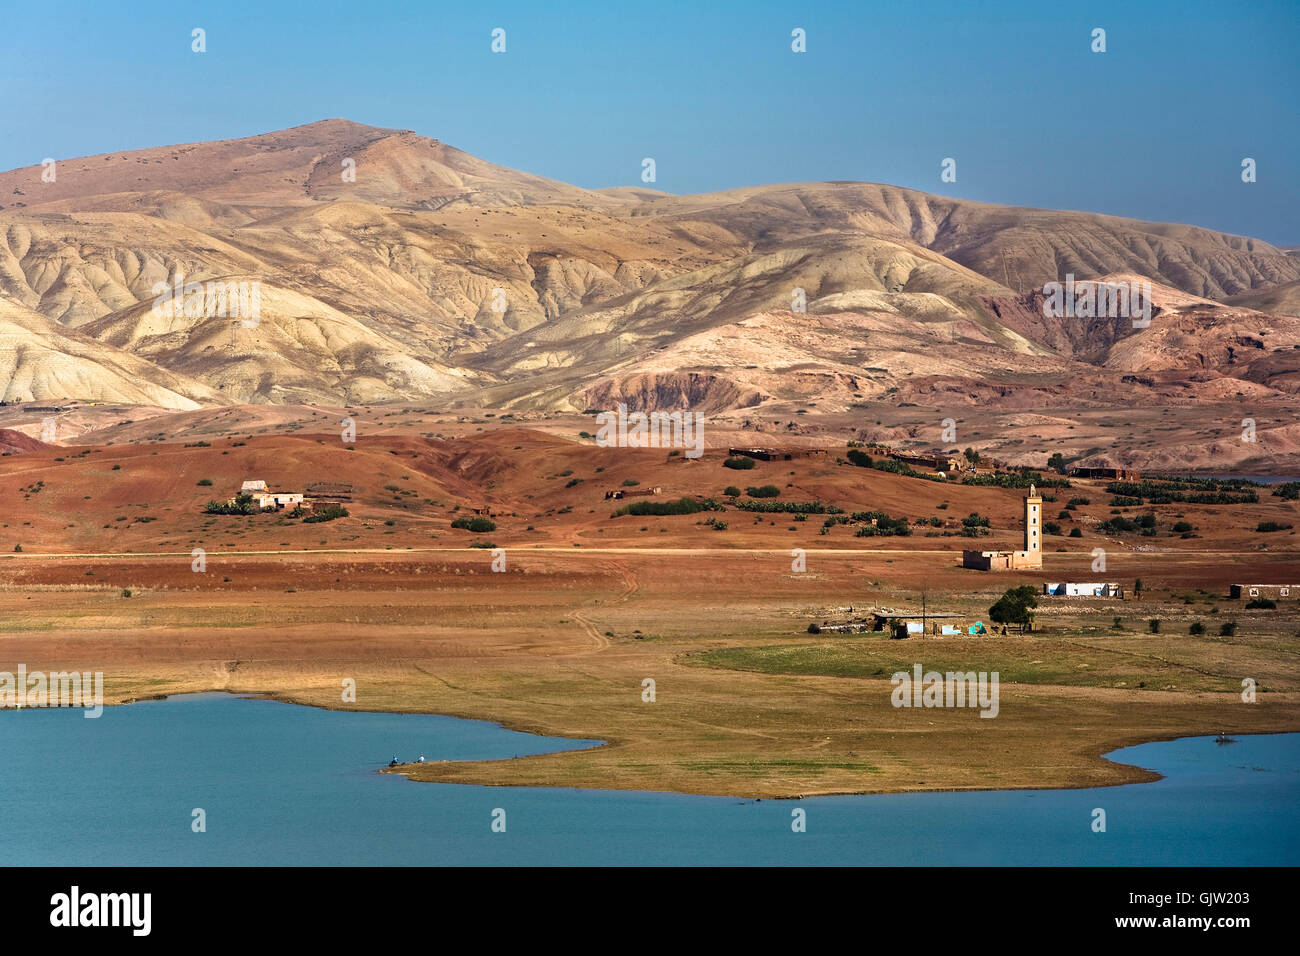 mountains morocco landscape format - Stock Image